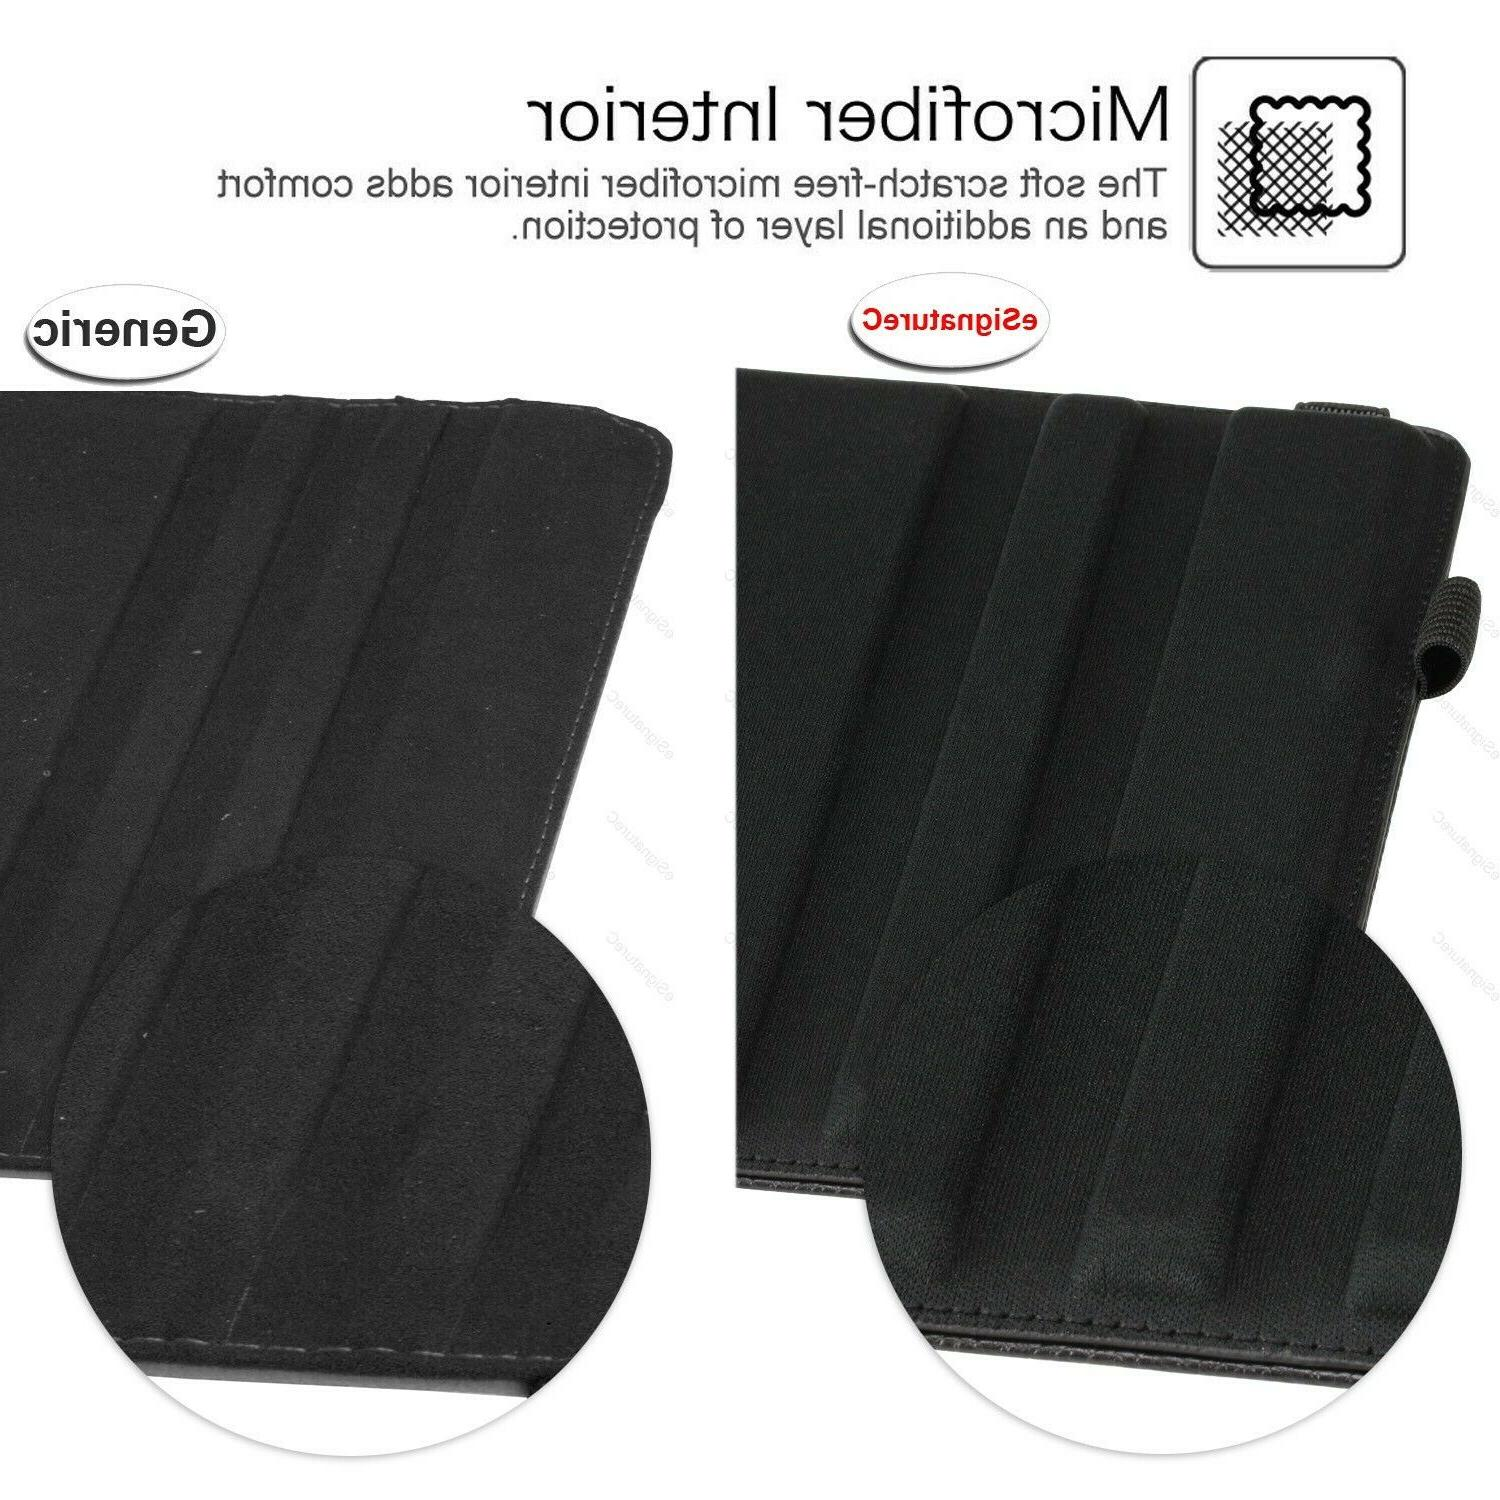 For Apple iPad / / 4th Gen Display Cover